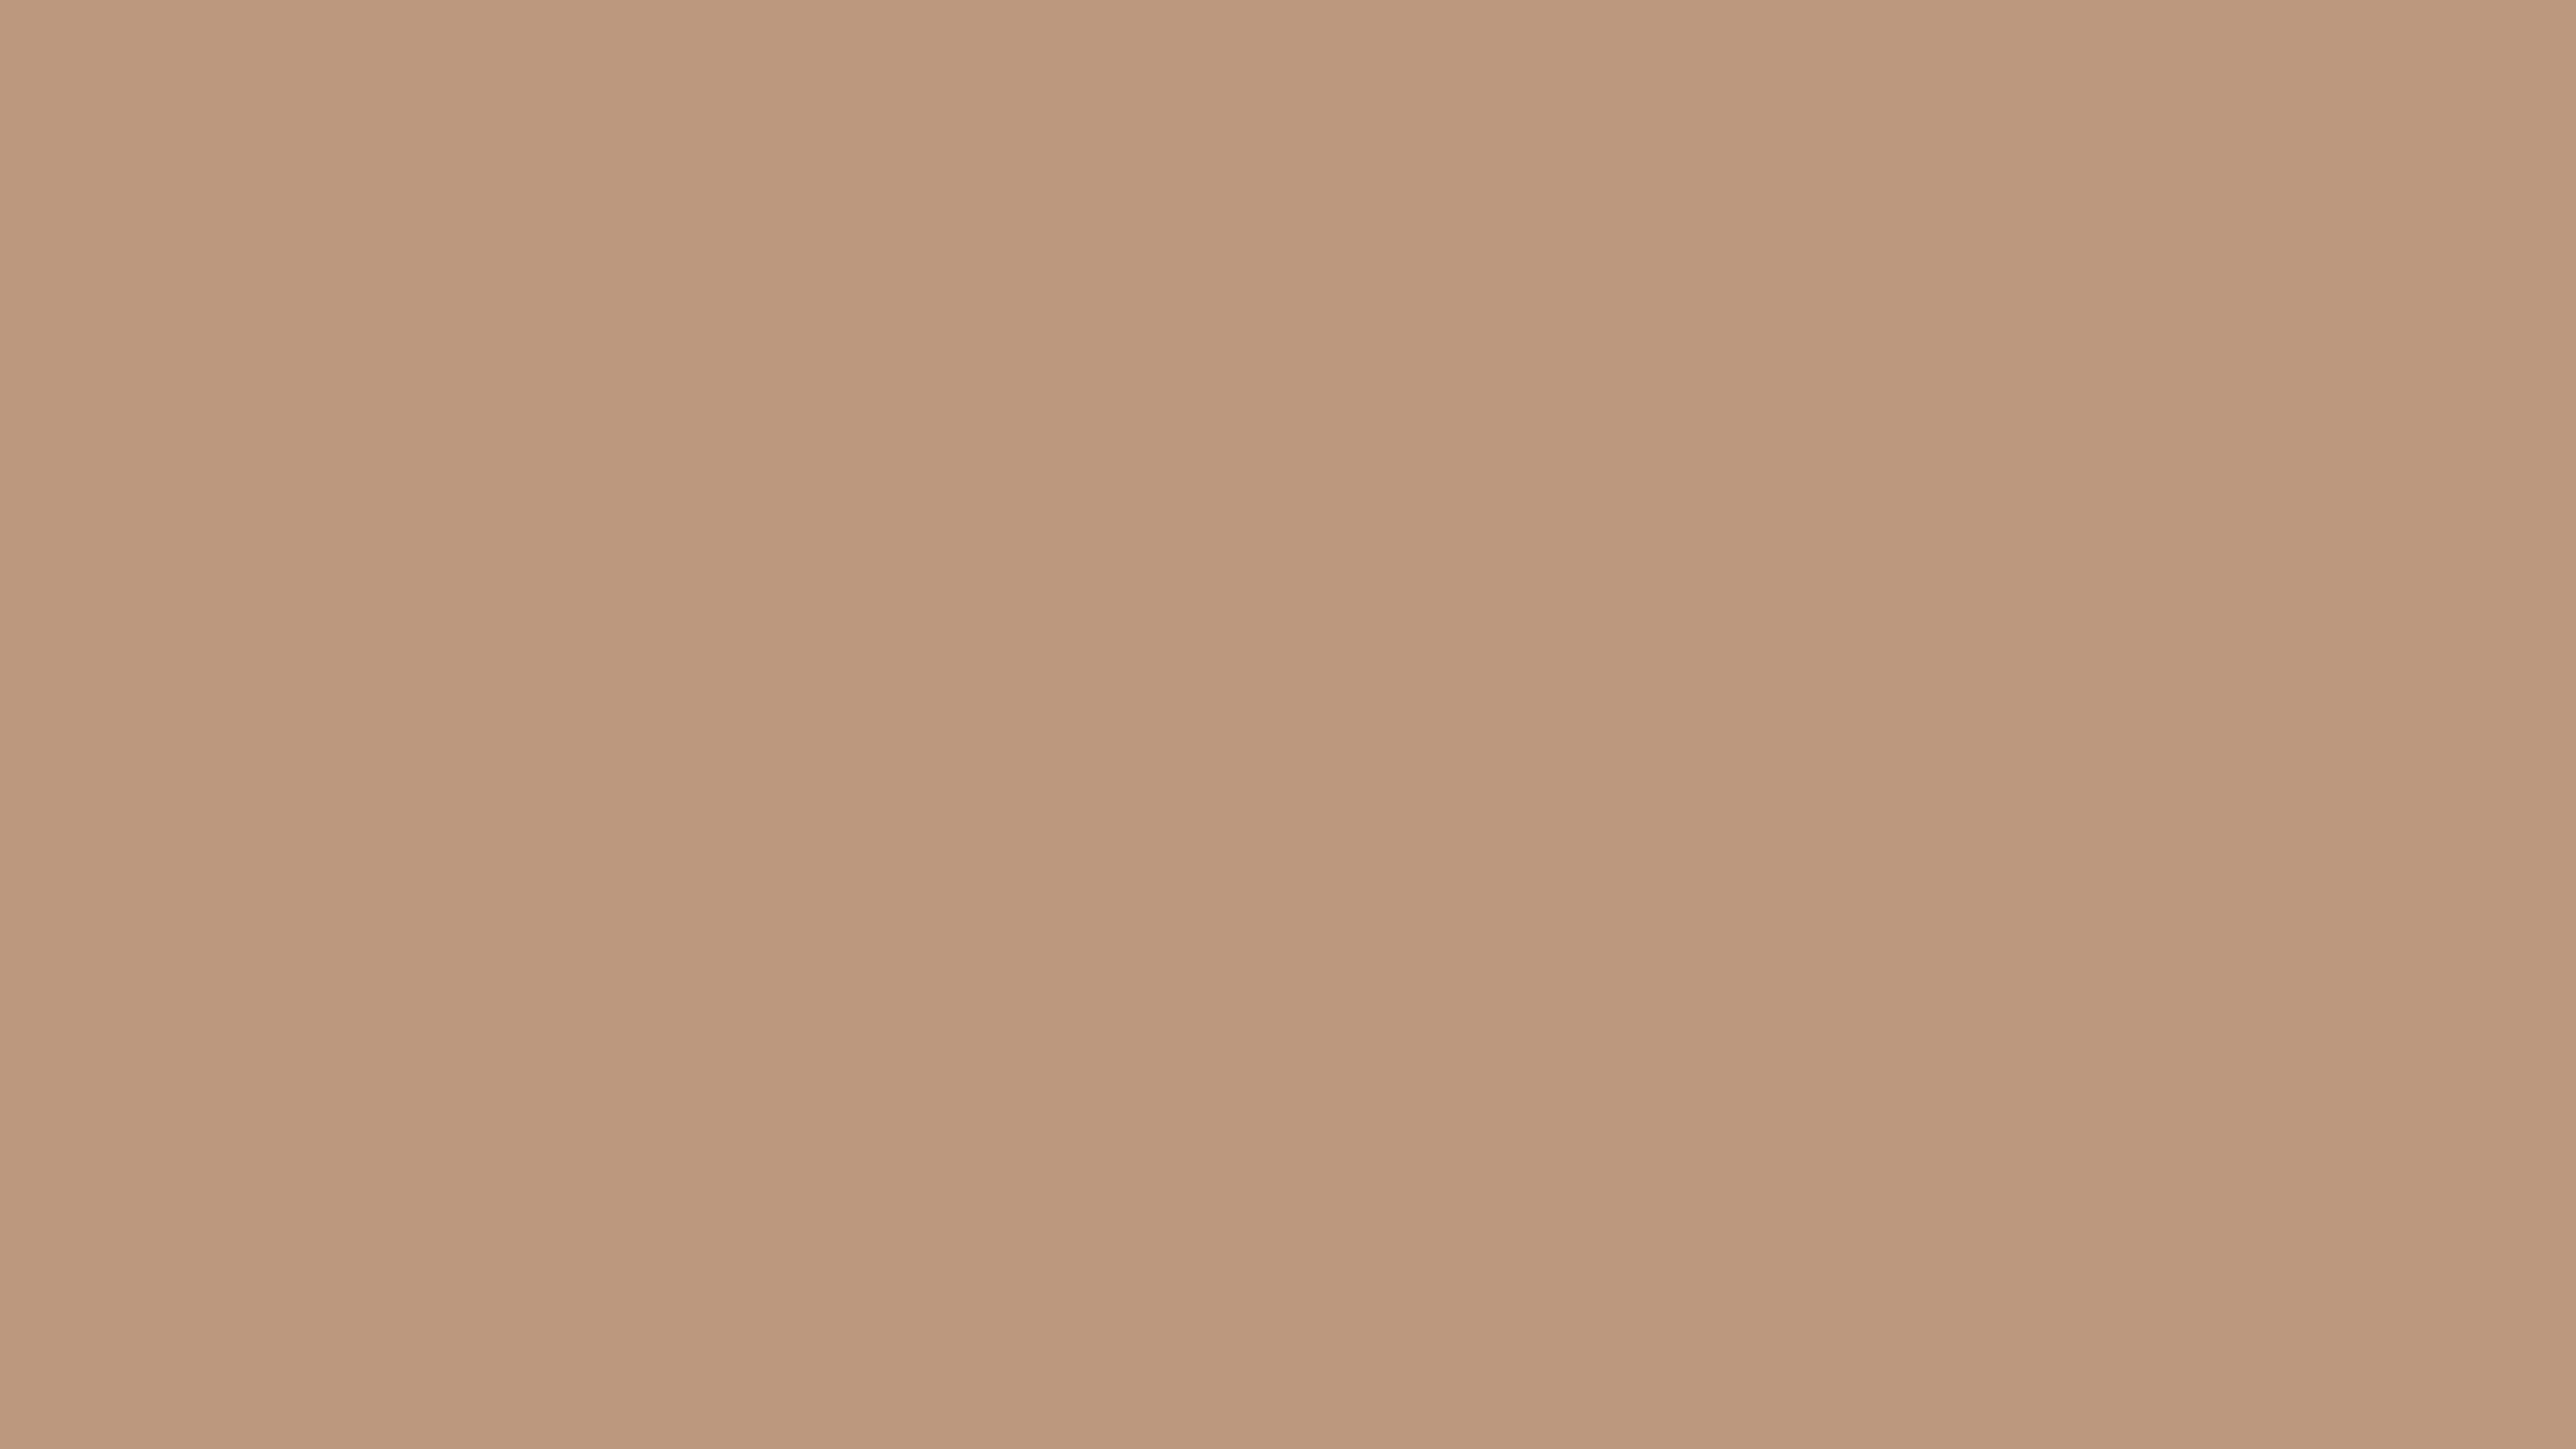 4096x2304 Pale Taupe Solid Color Background